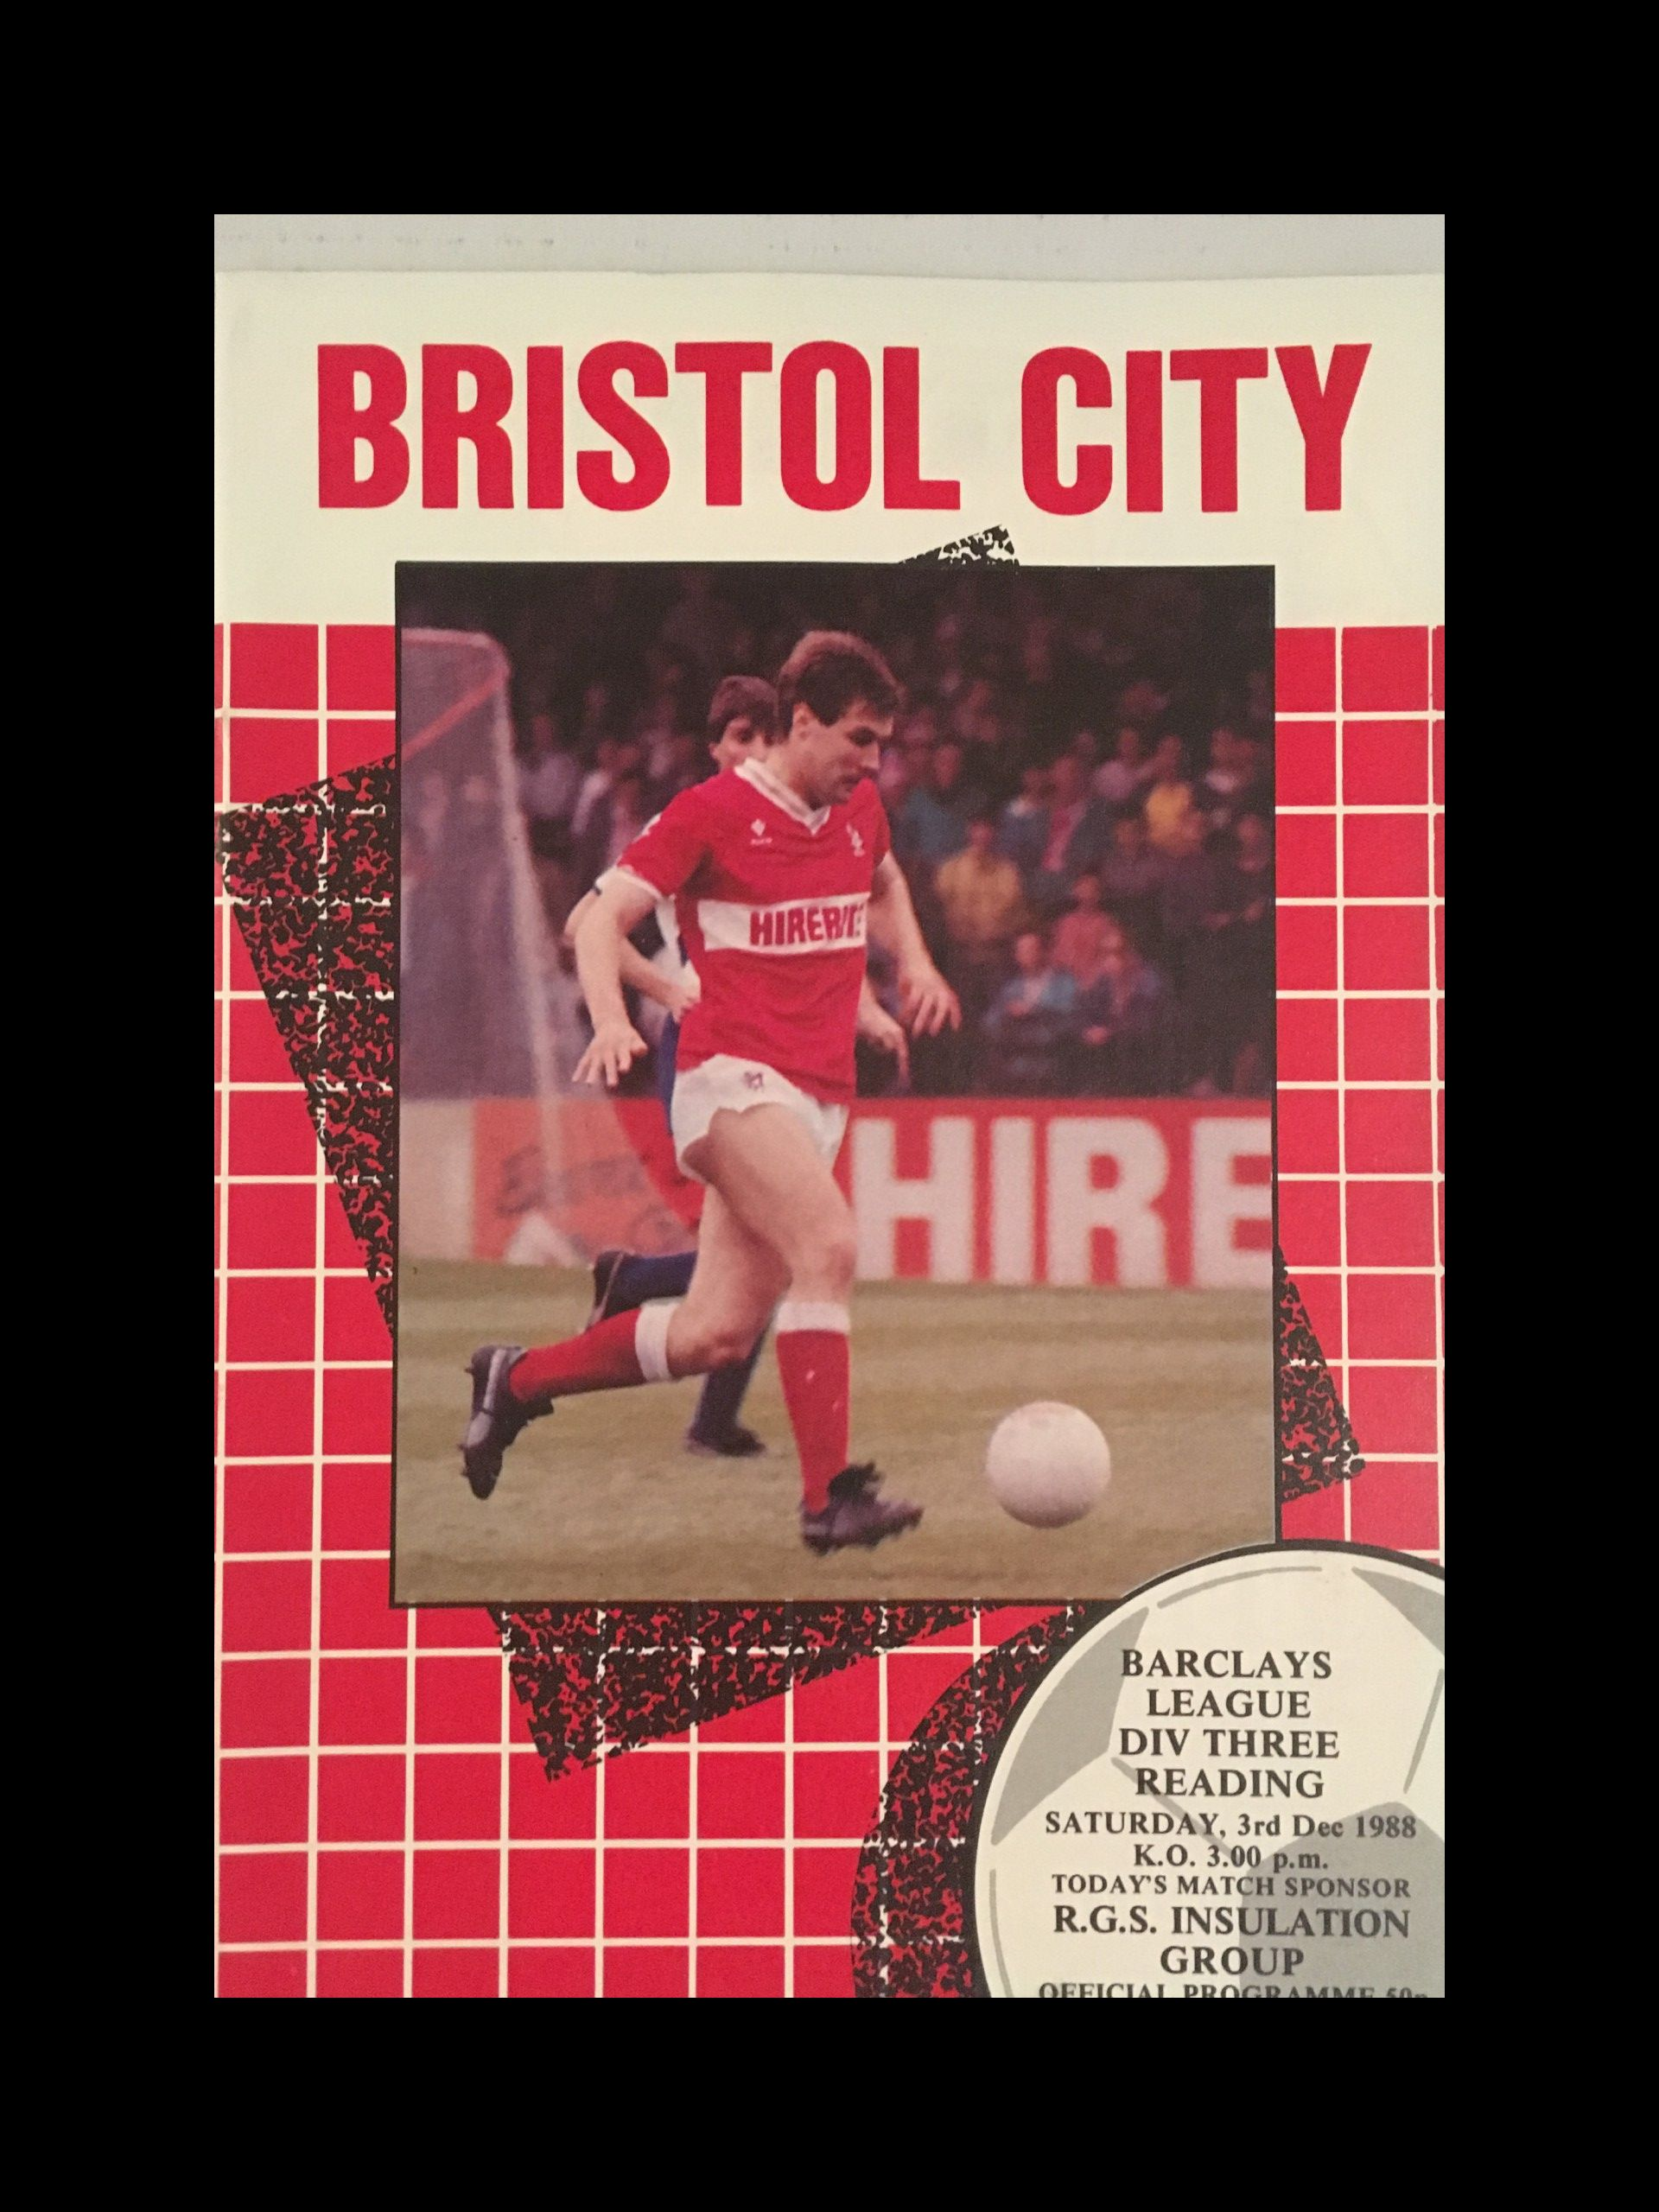 Bristol City v Reading 03-12-1988 Programme